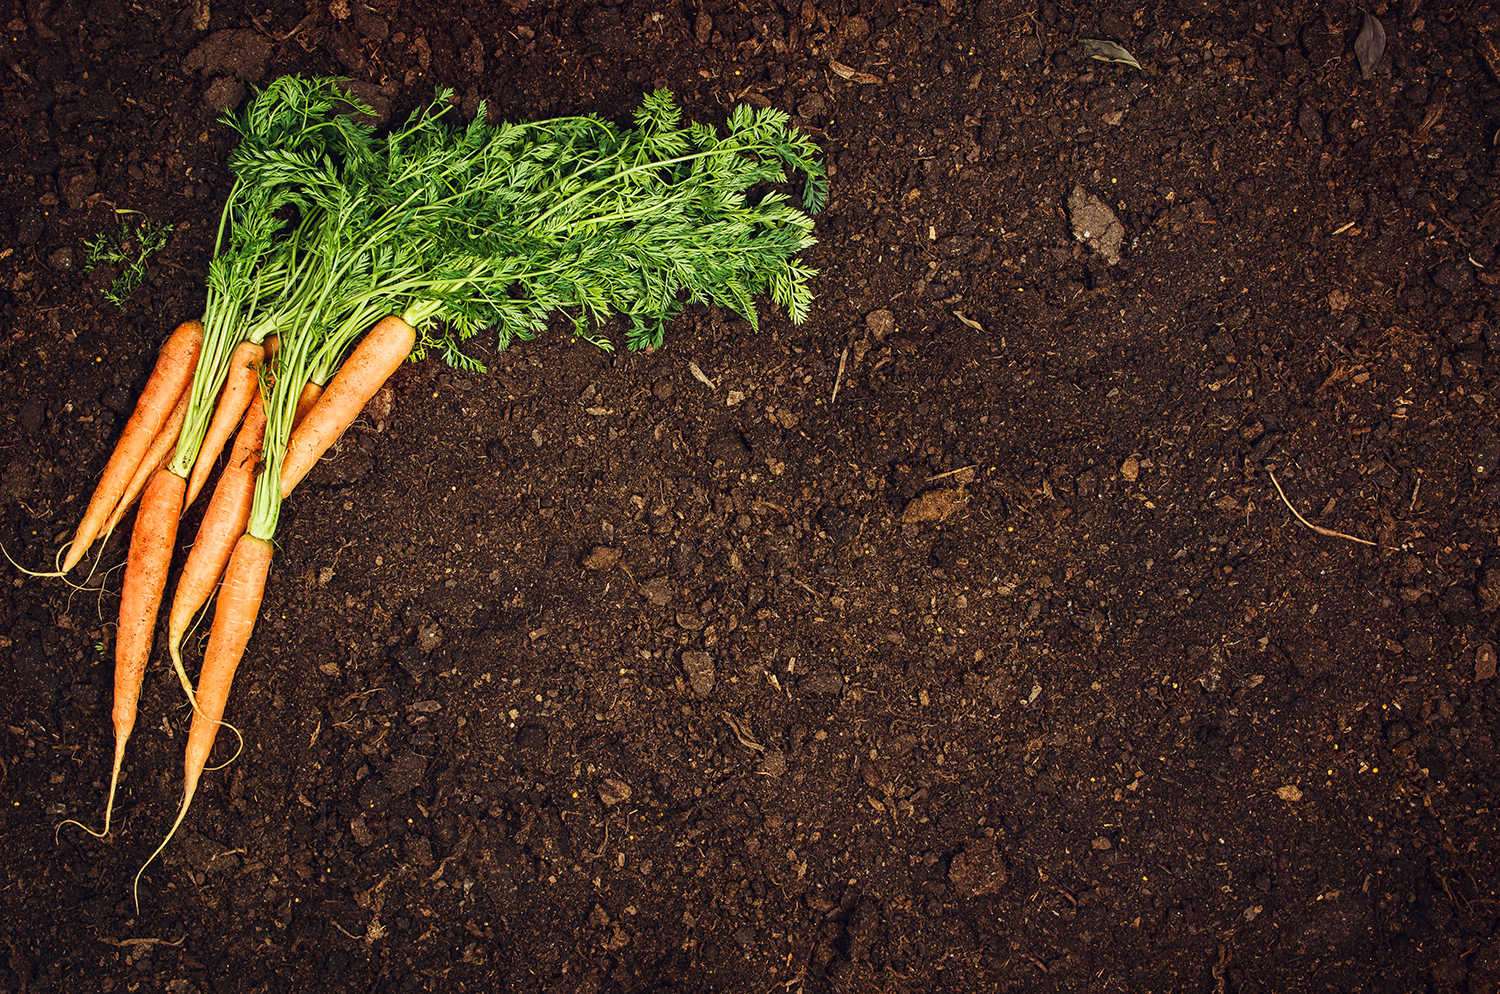 Rich brown soil with carrots laying on top. Freshly picked.